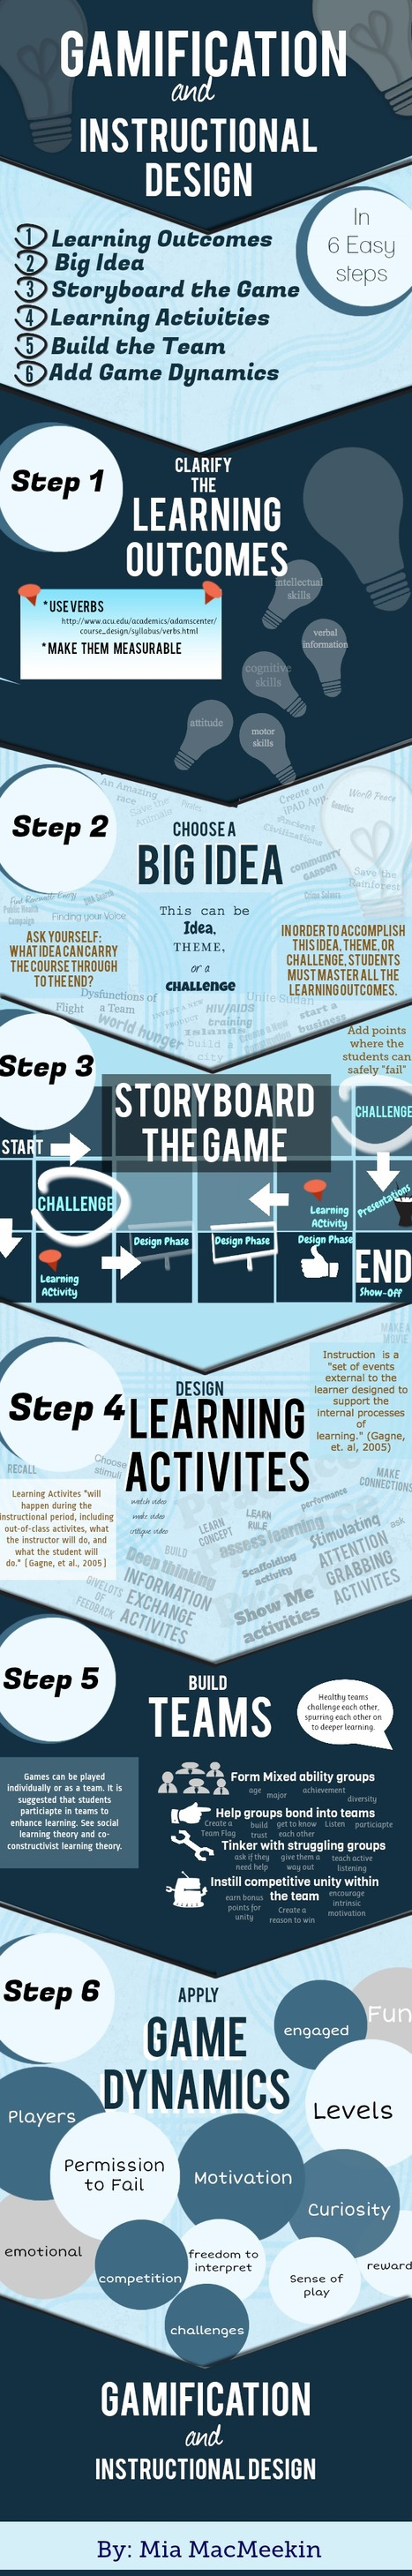 How To Gamify Your Classroom In 6 Easy Steps - Edudemic | Video Games in the Classroom | Scoop.it